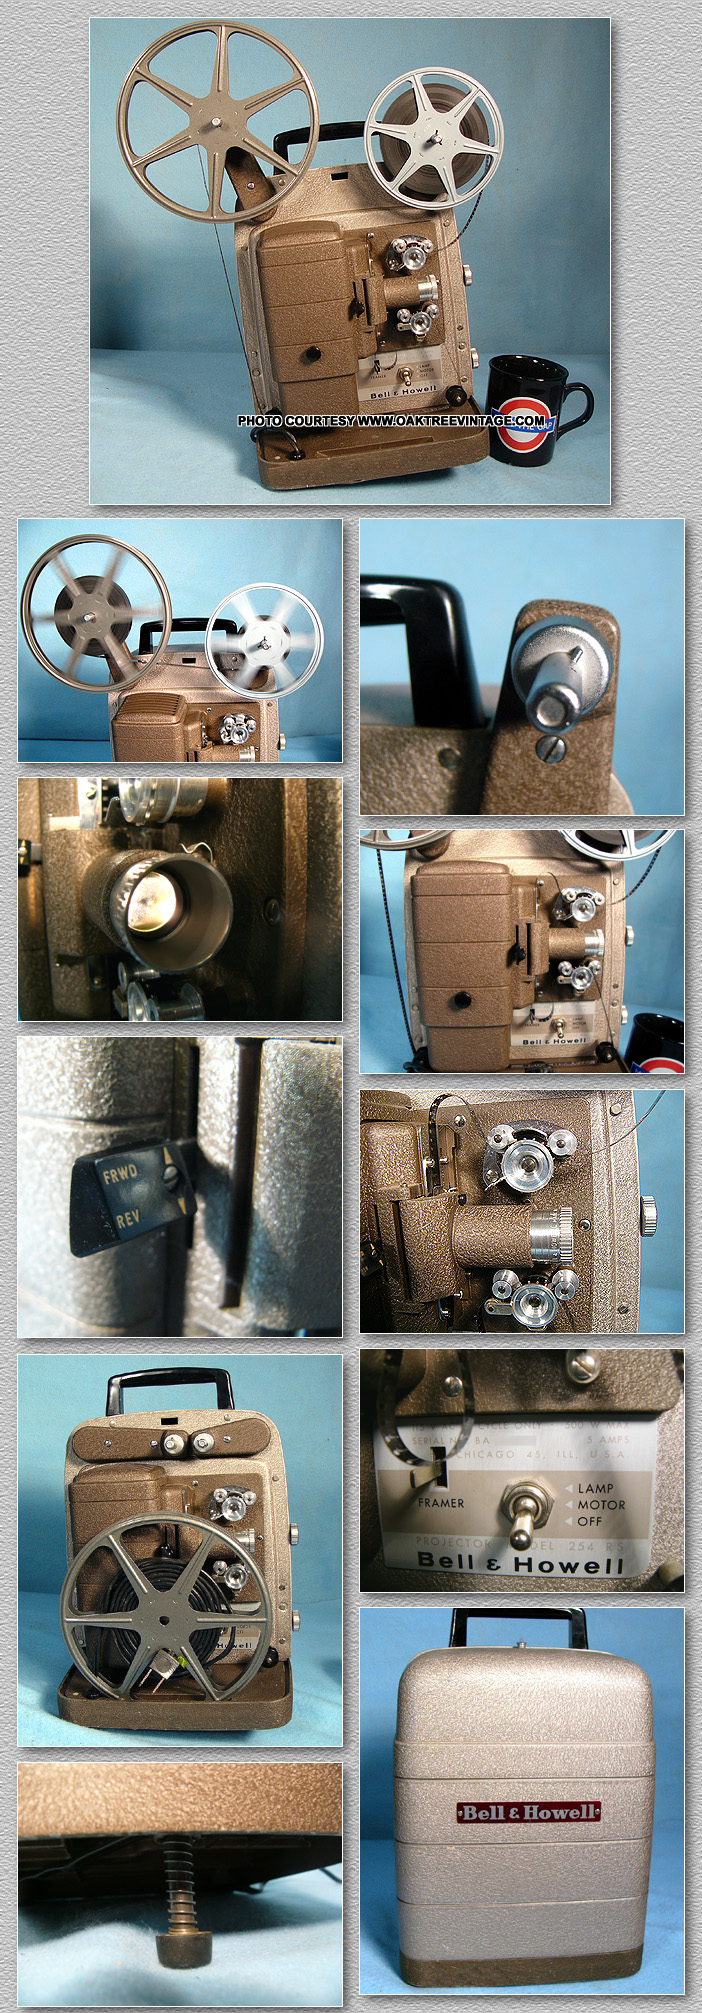 8mm Forum: Bell and Howell 254RS 8mm projector manual?